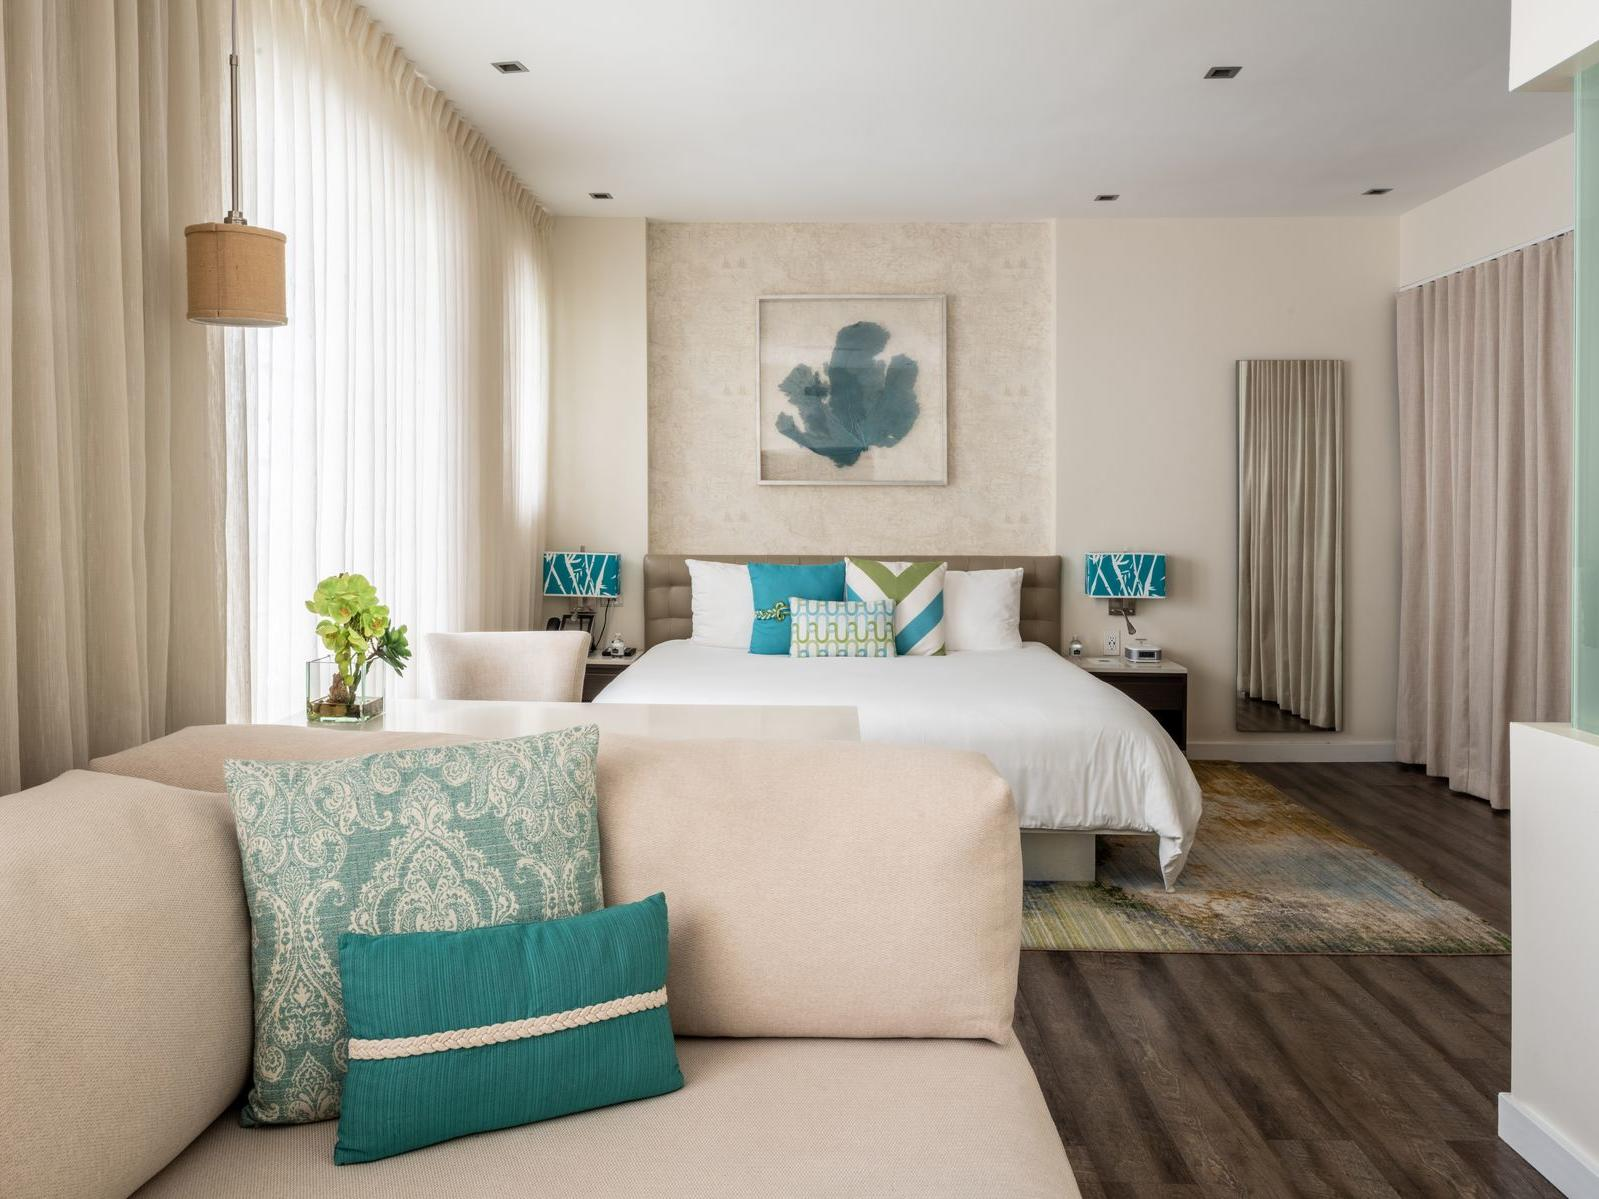 couch and bed in room with blue colors